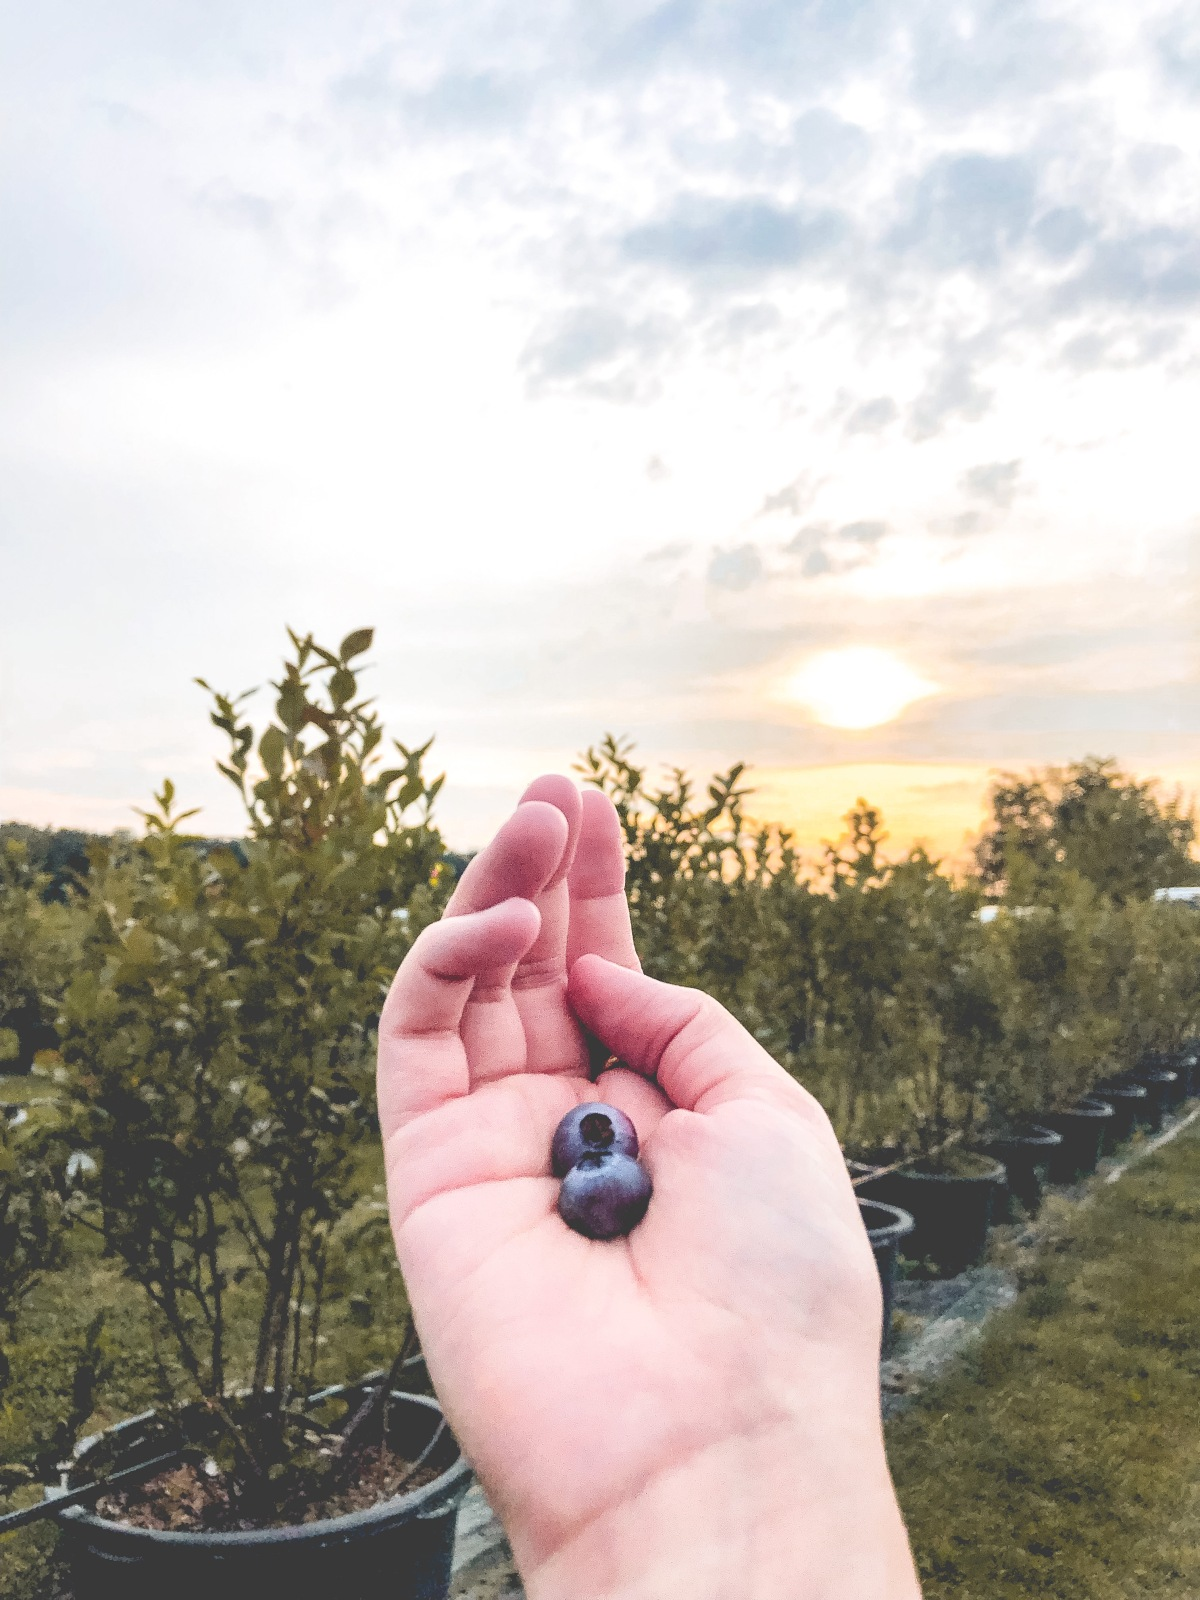 The day I went to a blueberry farm and picked fresh blueberries for the firsttime